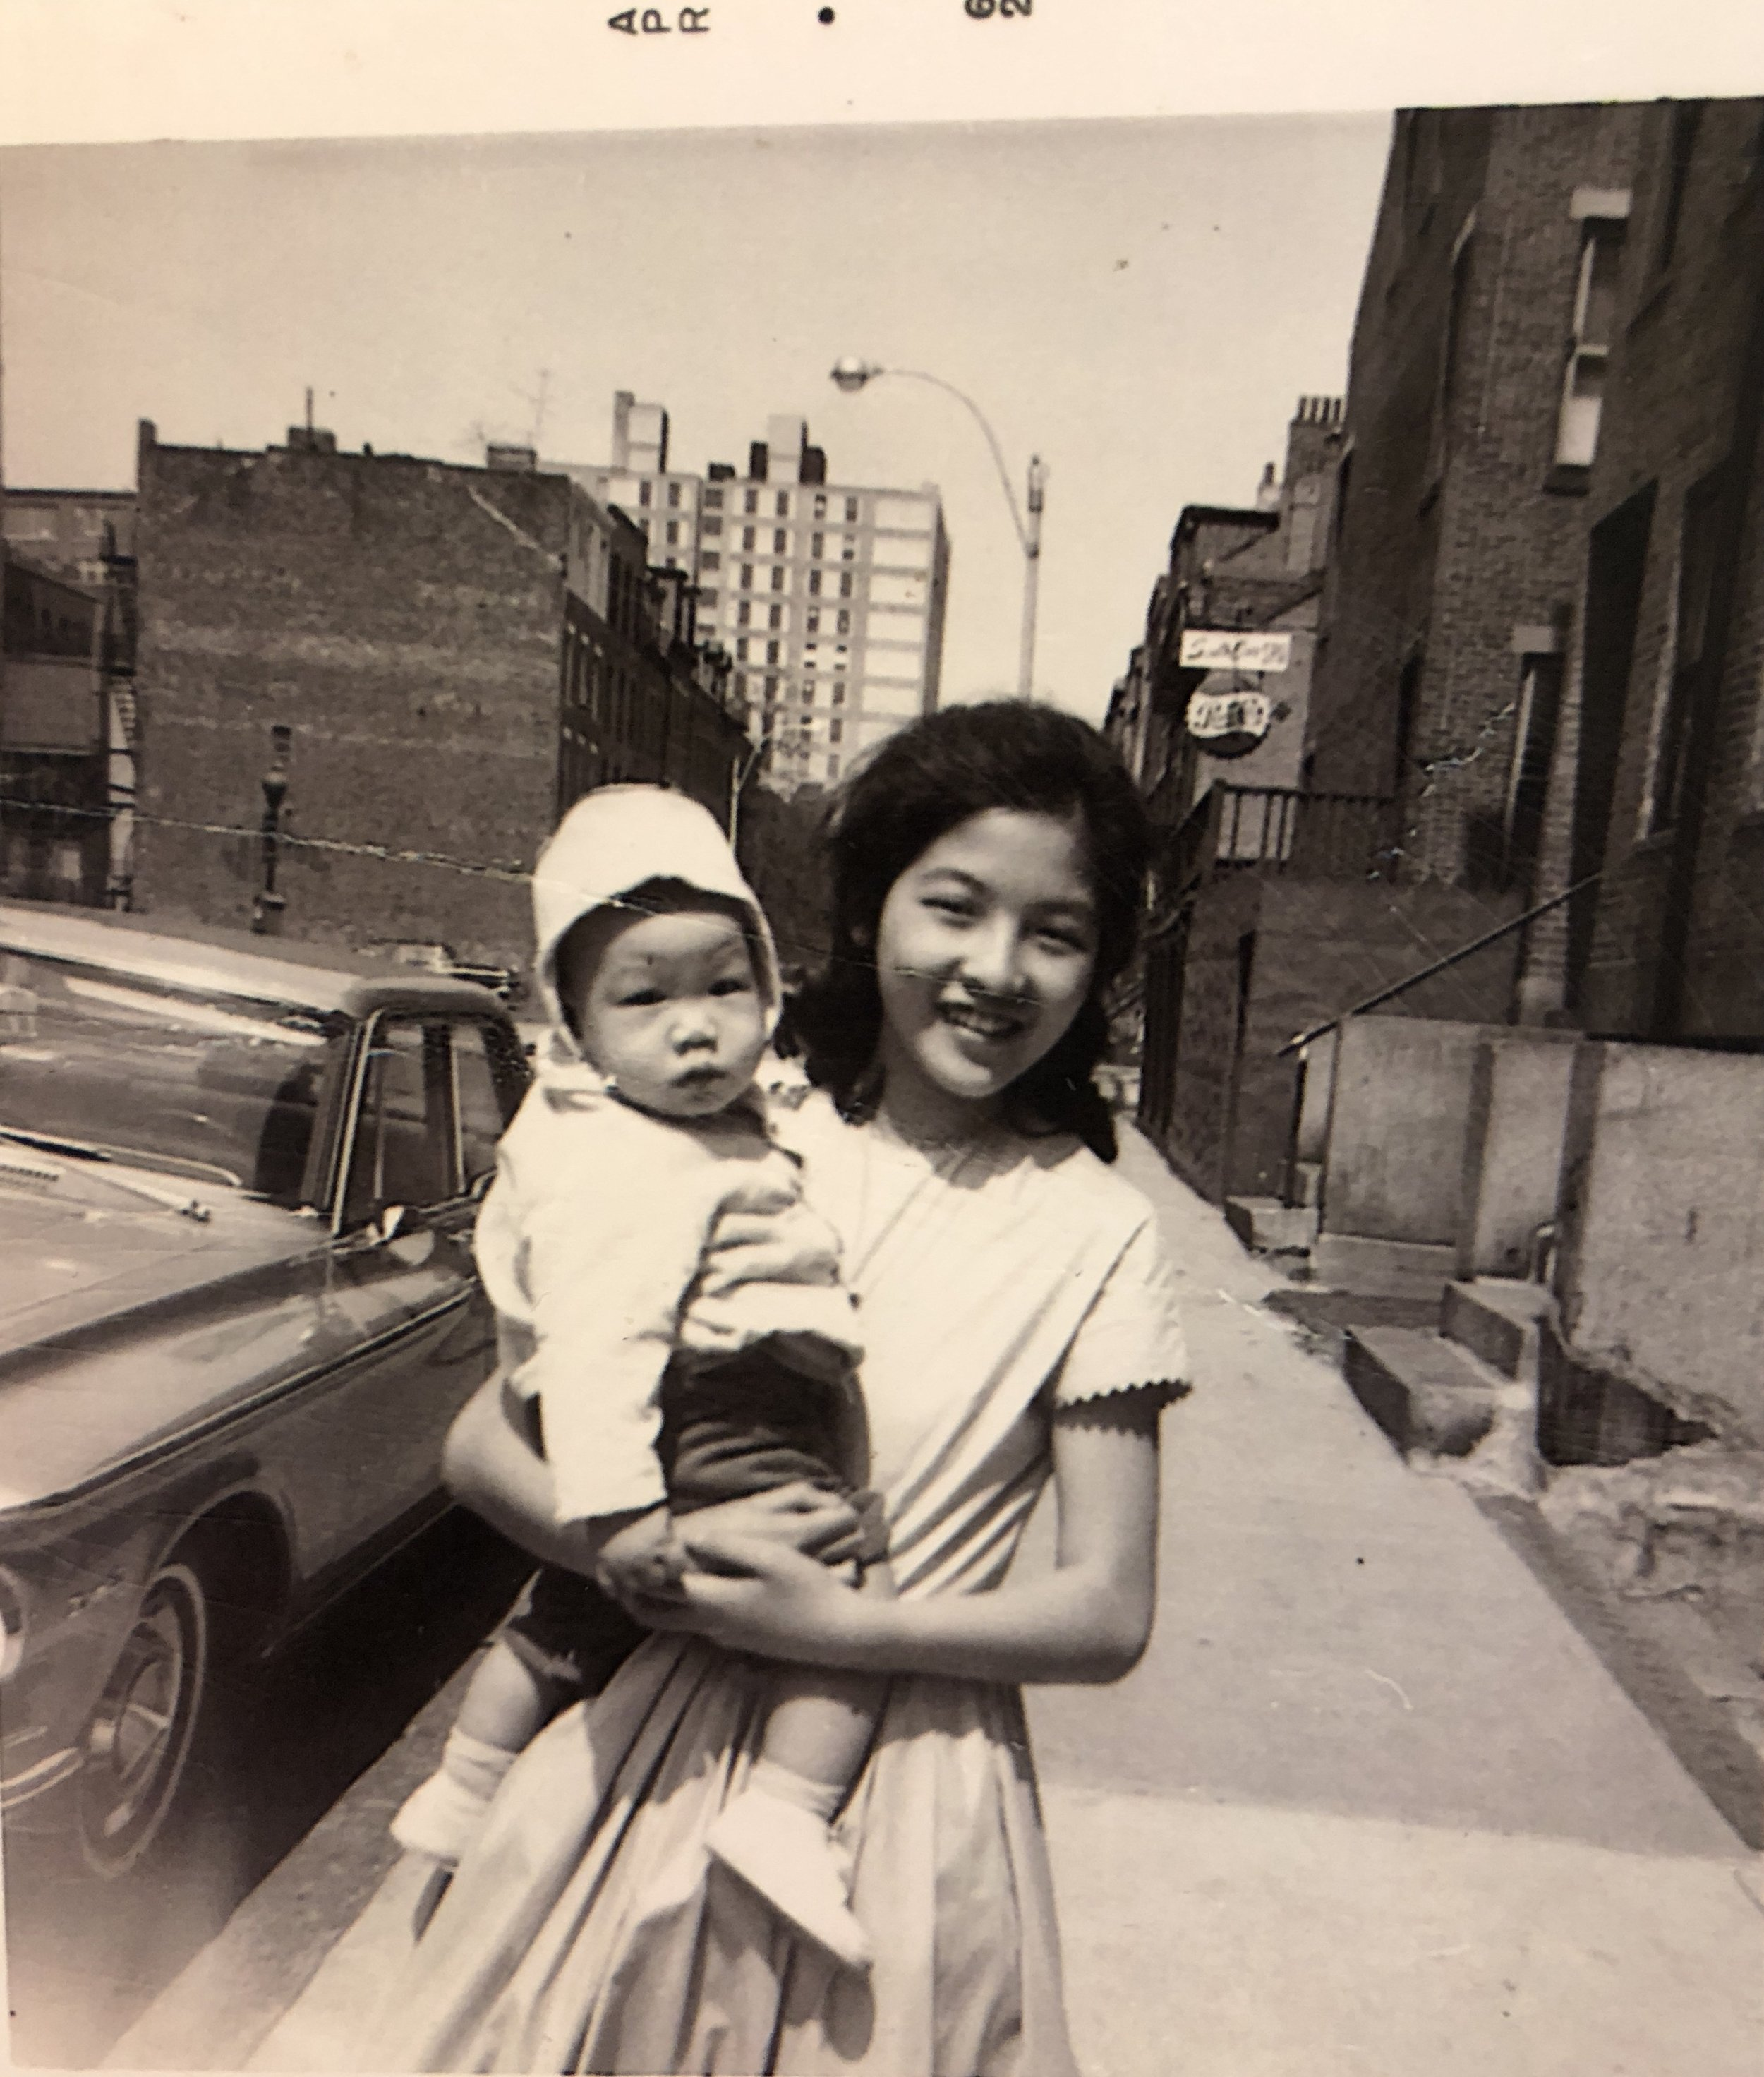 Last Easter Sunday, April, 1962, before the demolition of Hudson Street; Cynthia Yee wearing a polished cotton lilac dress she designed and sewed, babysitting her friend Susan's little brother, Ken Lim.